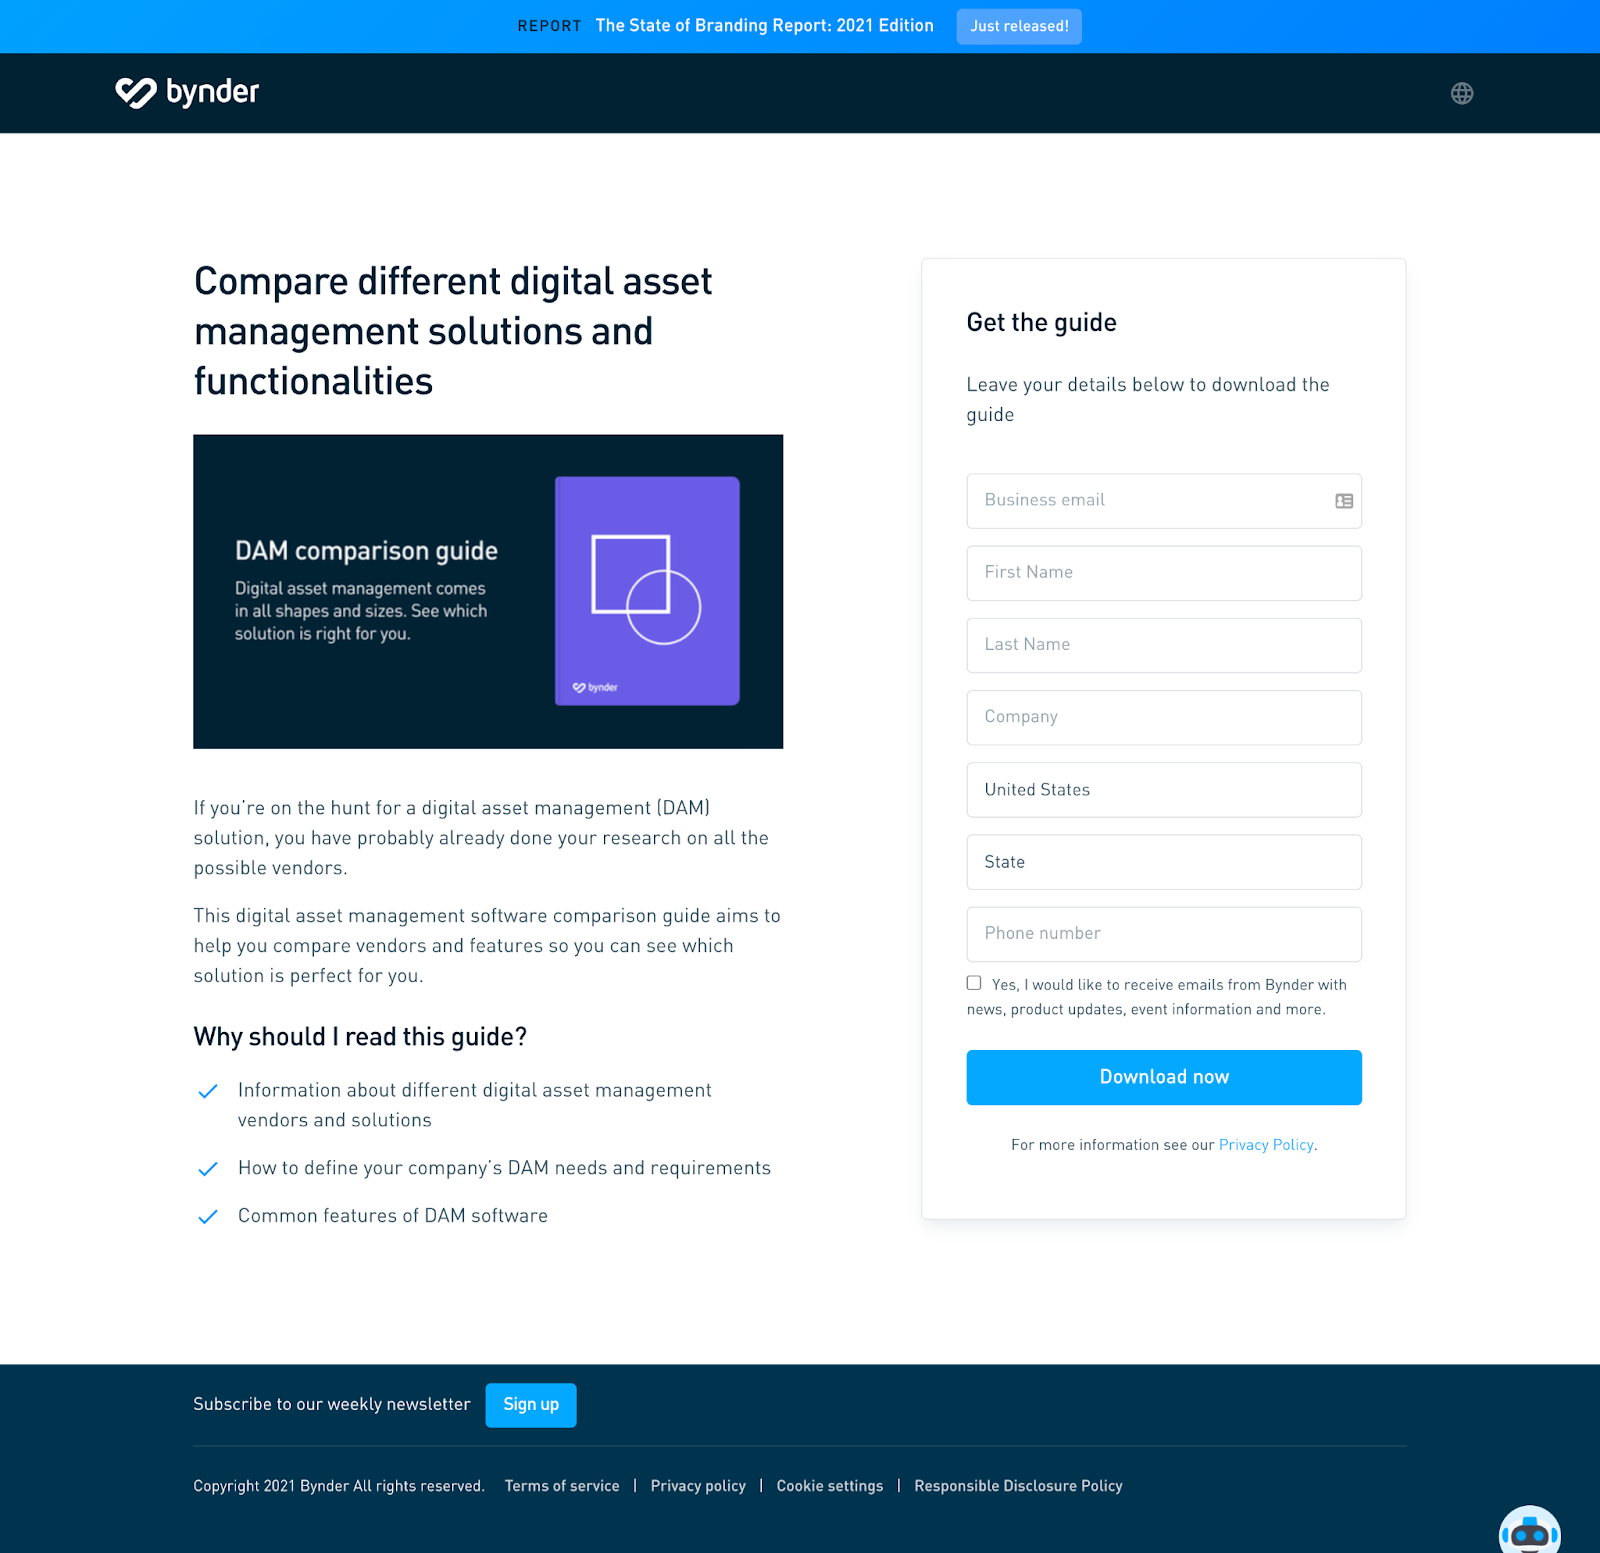 B2B Landing Pages - bynders landing page